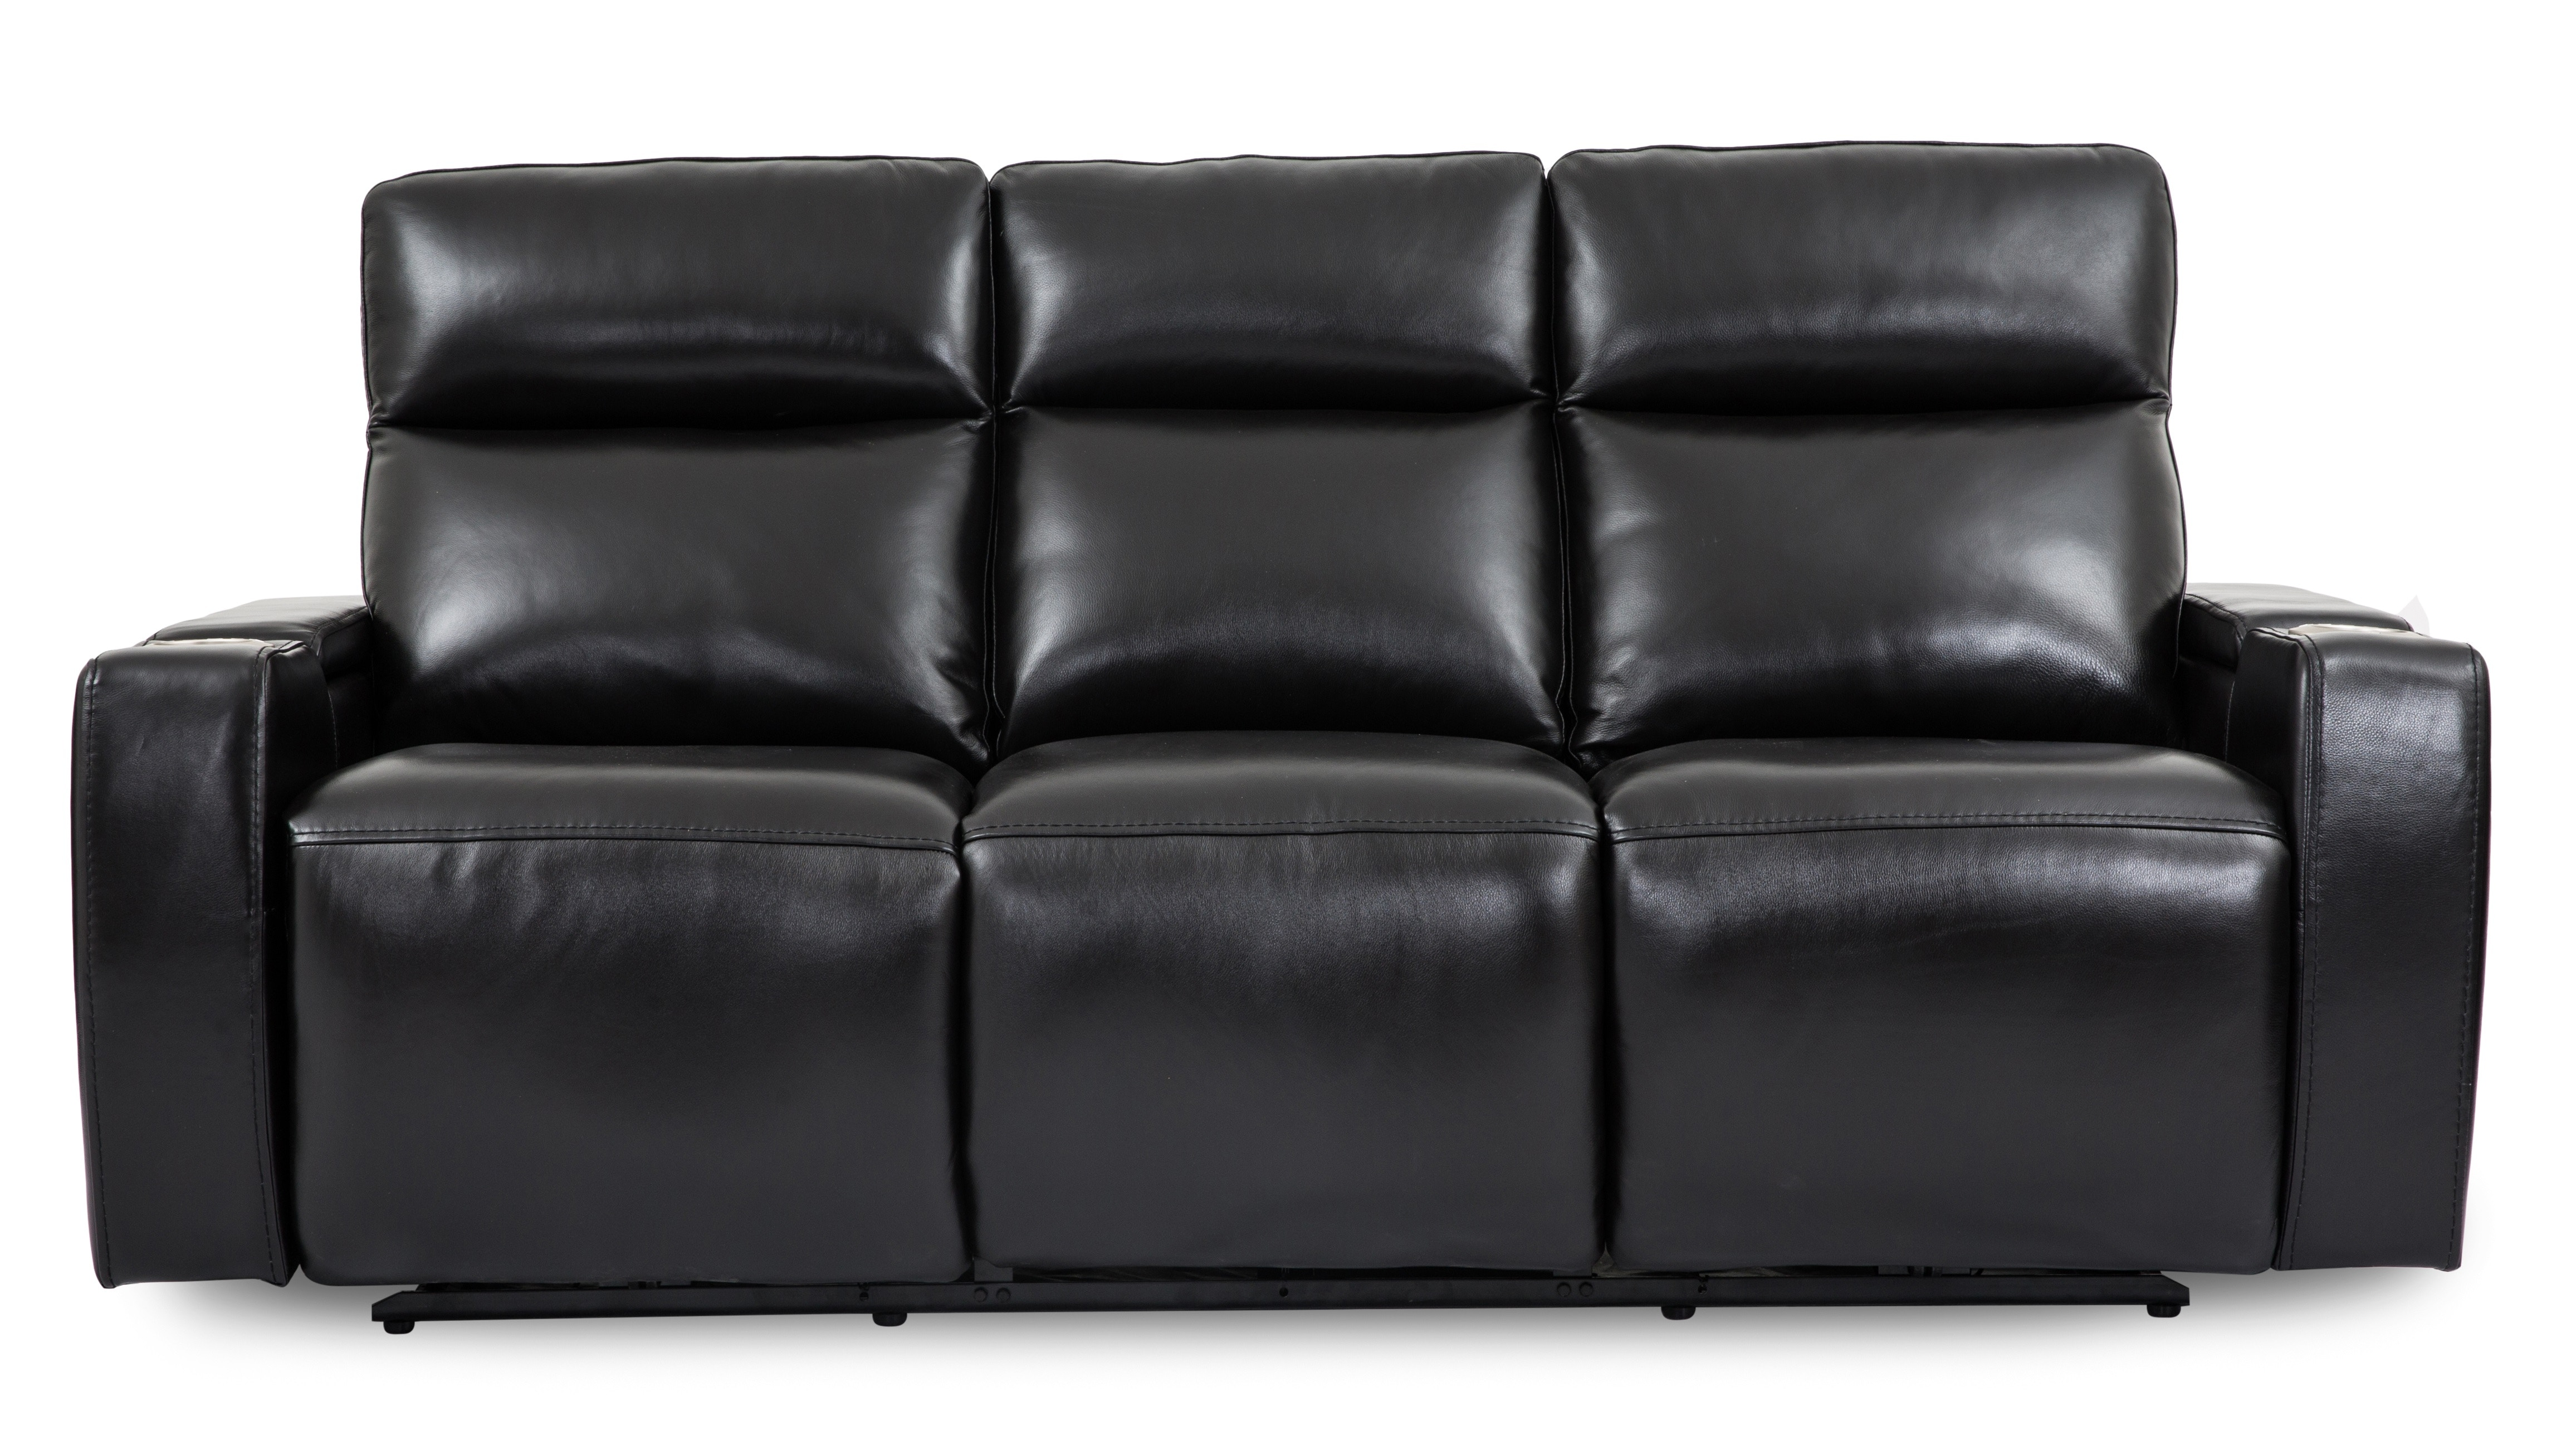 Wizard Leather Power Reclining Sofa With Drop Down Table ST:499959